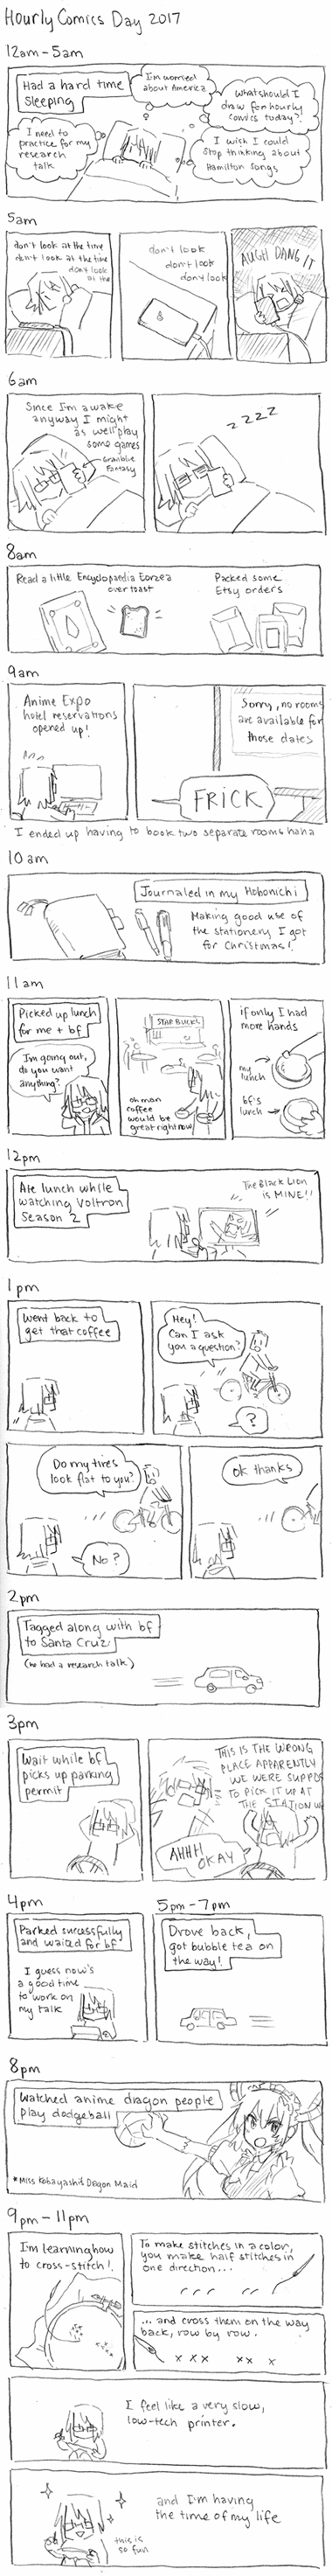 Hourly Comics Day 2017